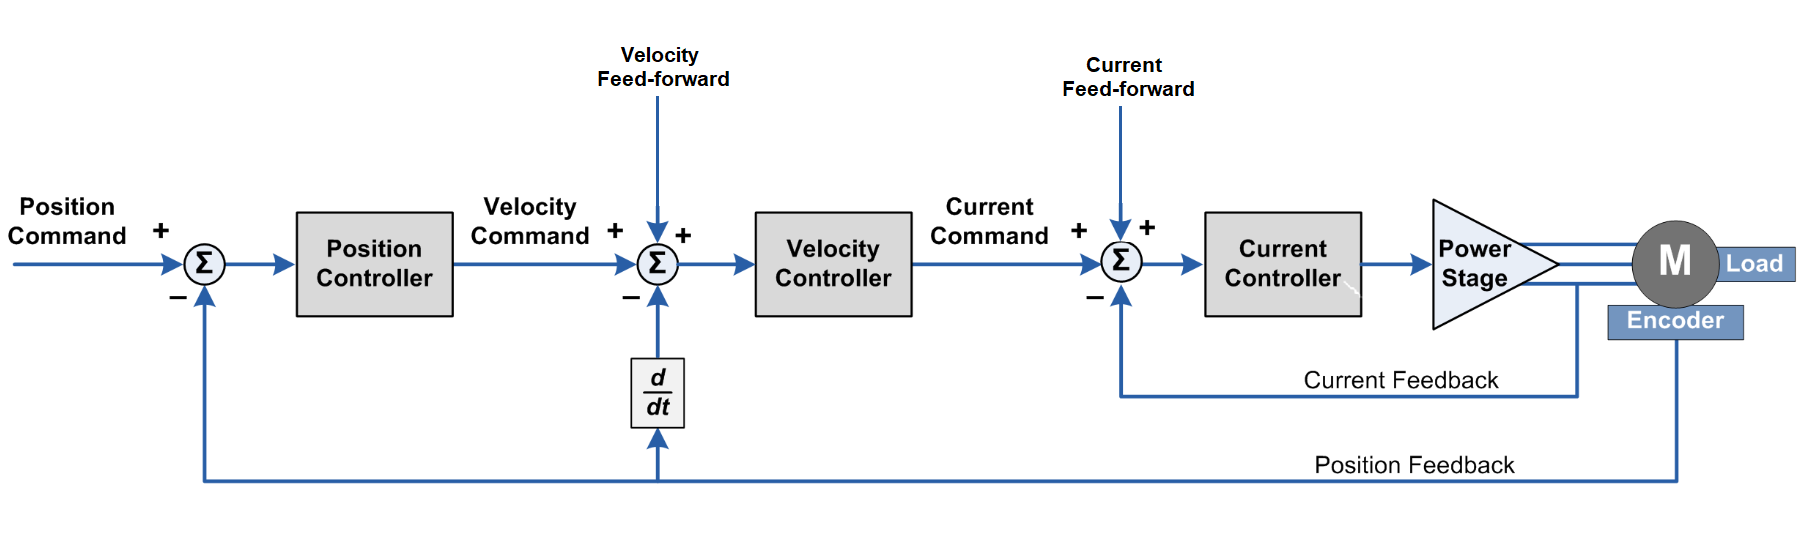 Deriving State Space Model of BLDC motor - Projects - ODrive Community